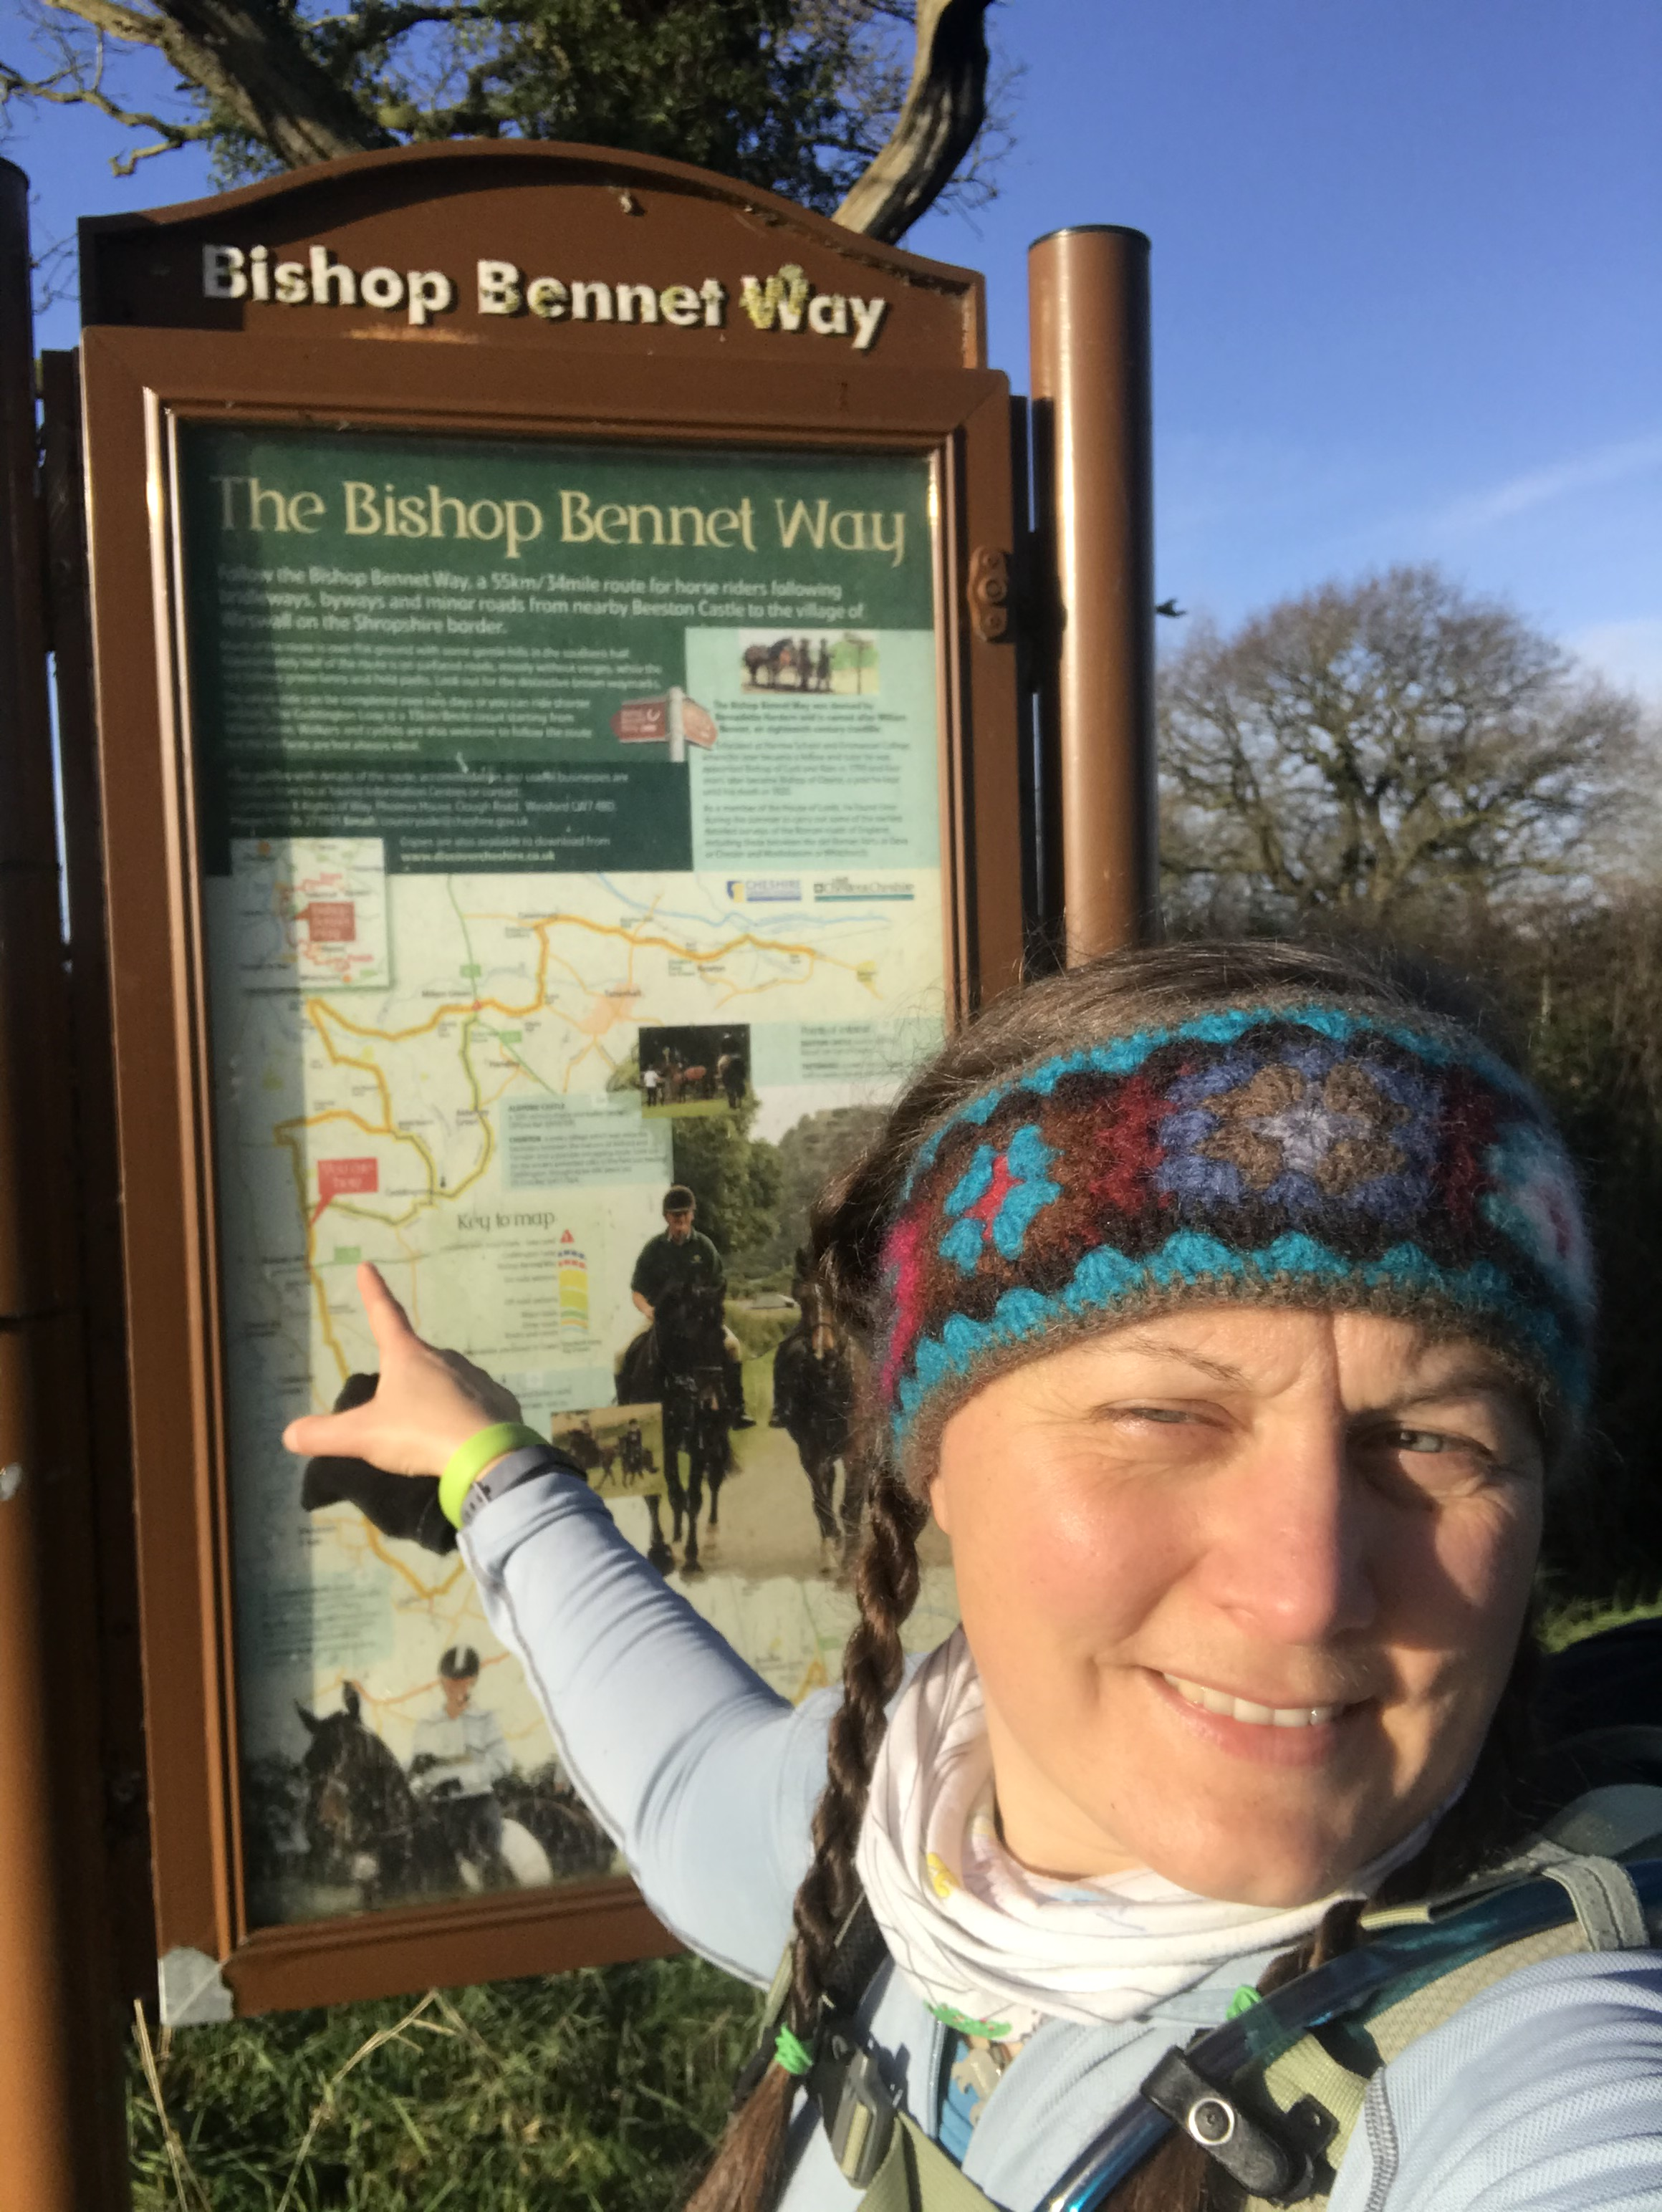 a woman wearing a knitted headbad pointing at a location on a large information board map